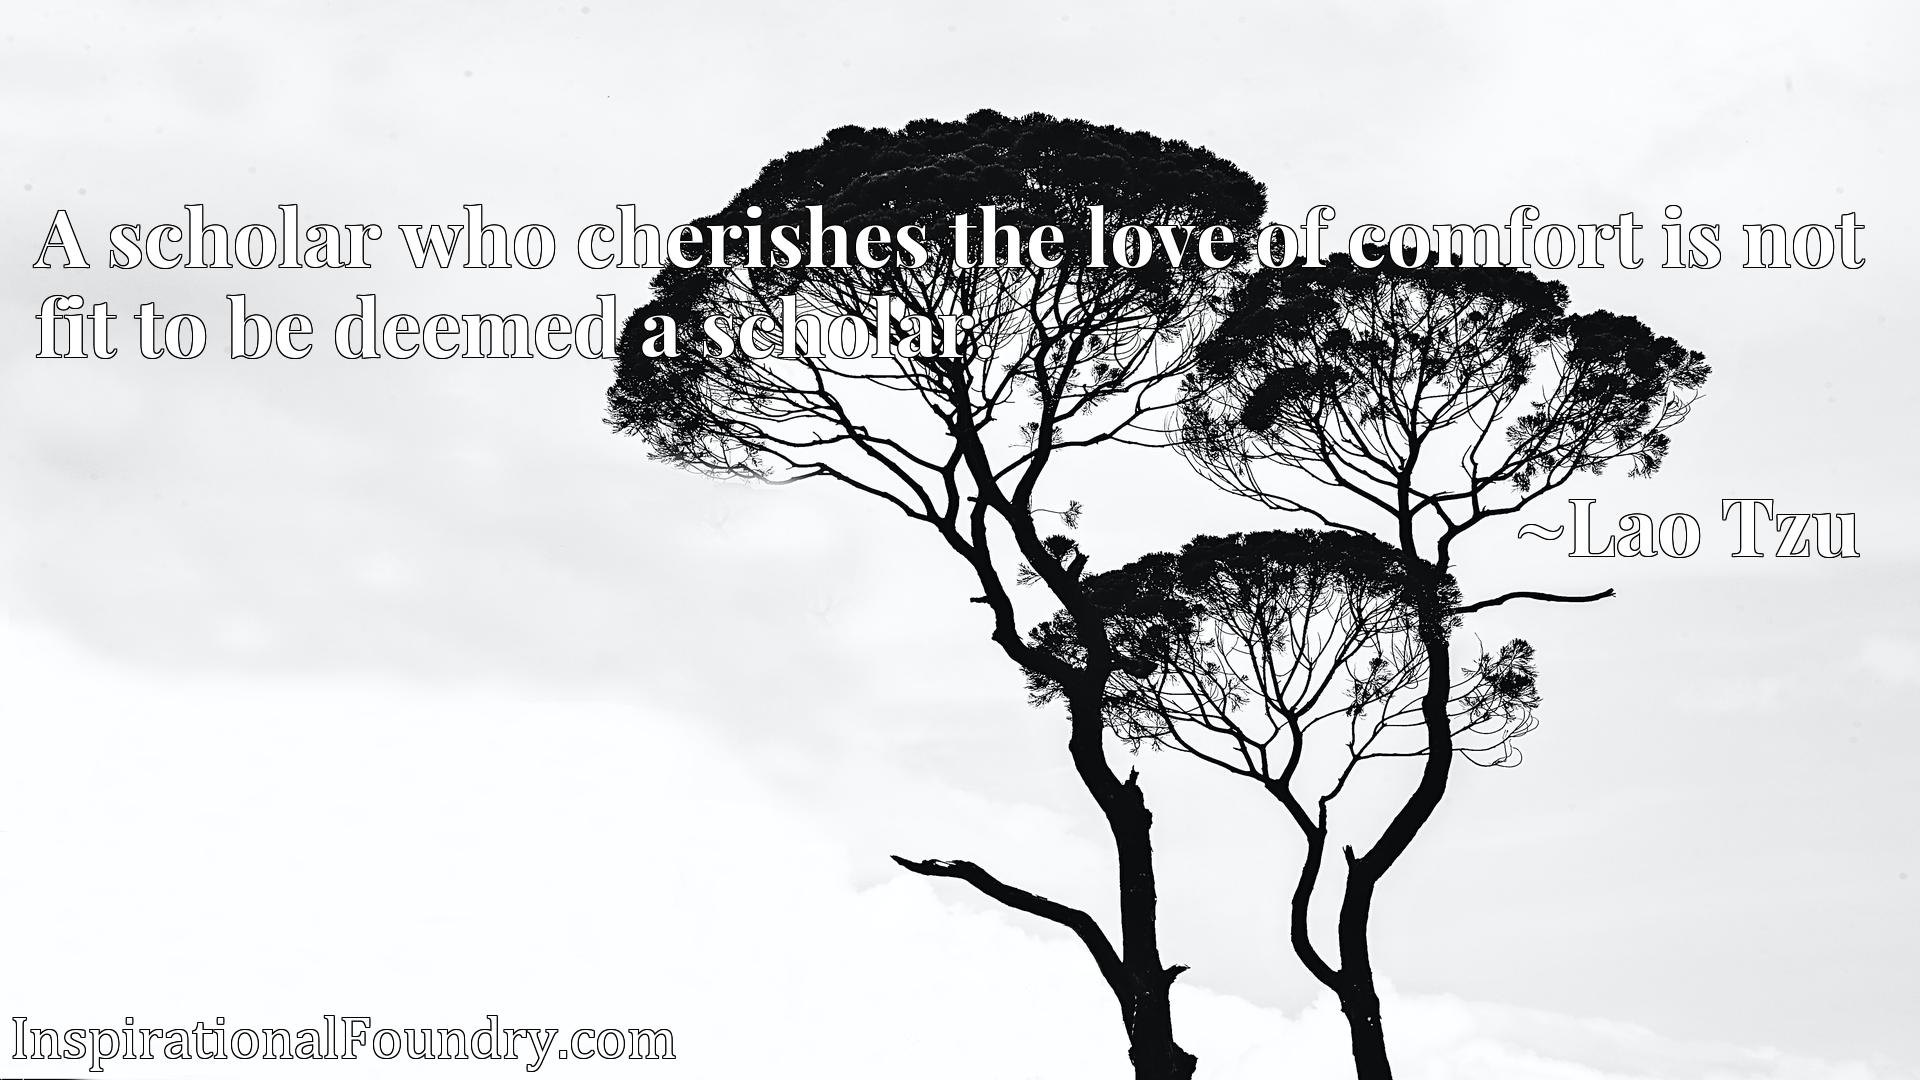 Quote Picture :A scholar who cherishes the love of comfort is not fit to be deemed a scholar.